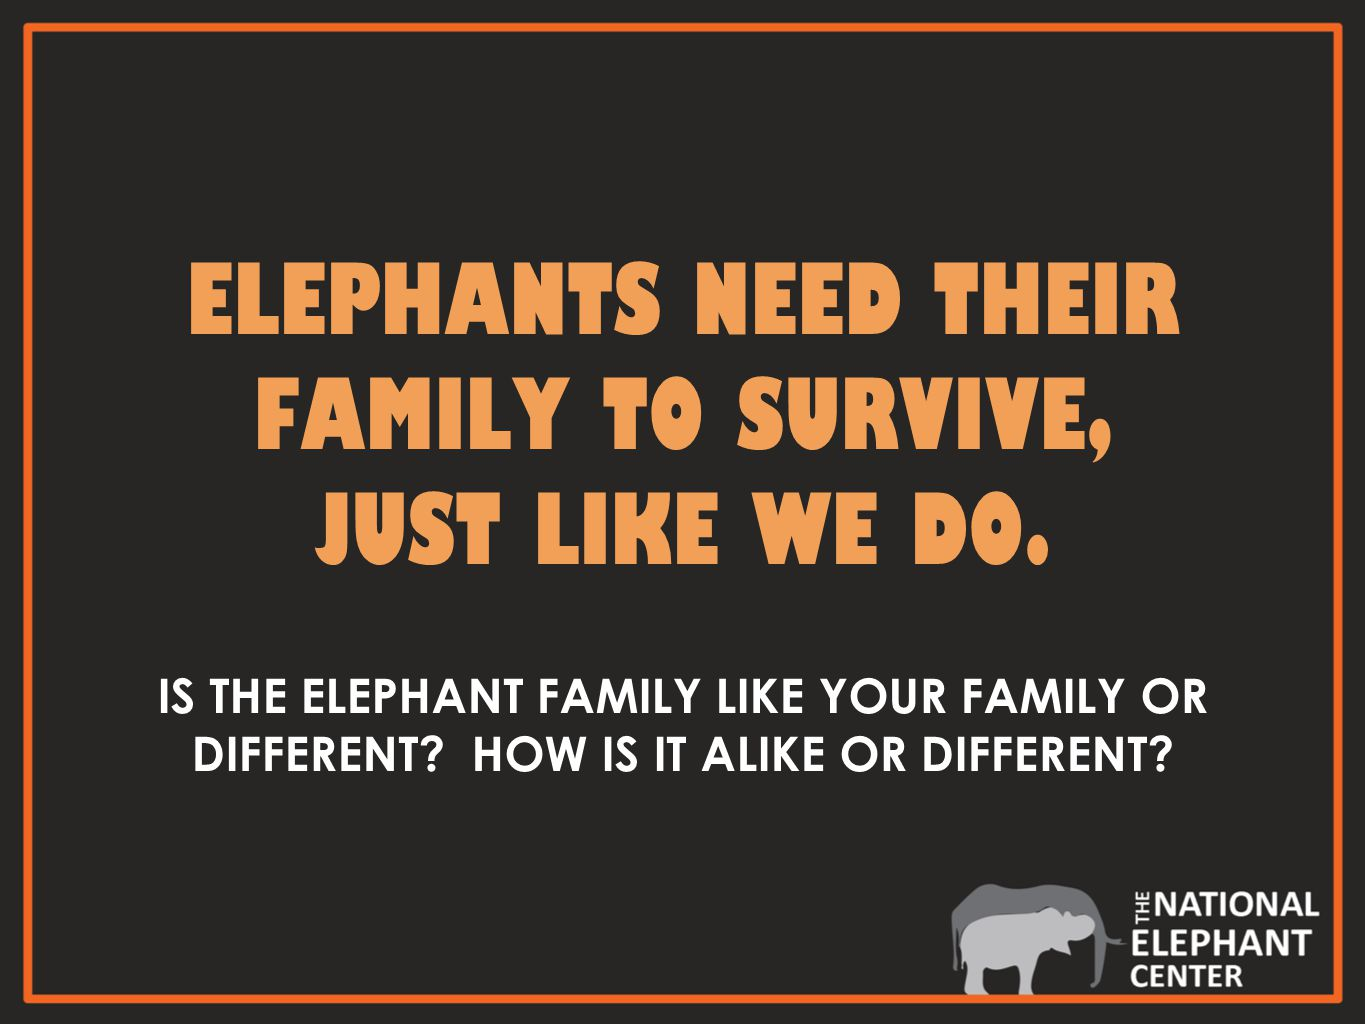 IS THE ELEPHANT FAMILY LIKE YOUR FAMILY OR DIFFERENT.